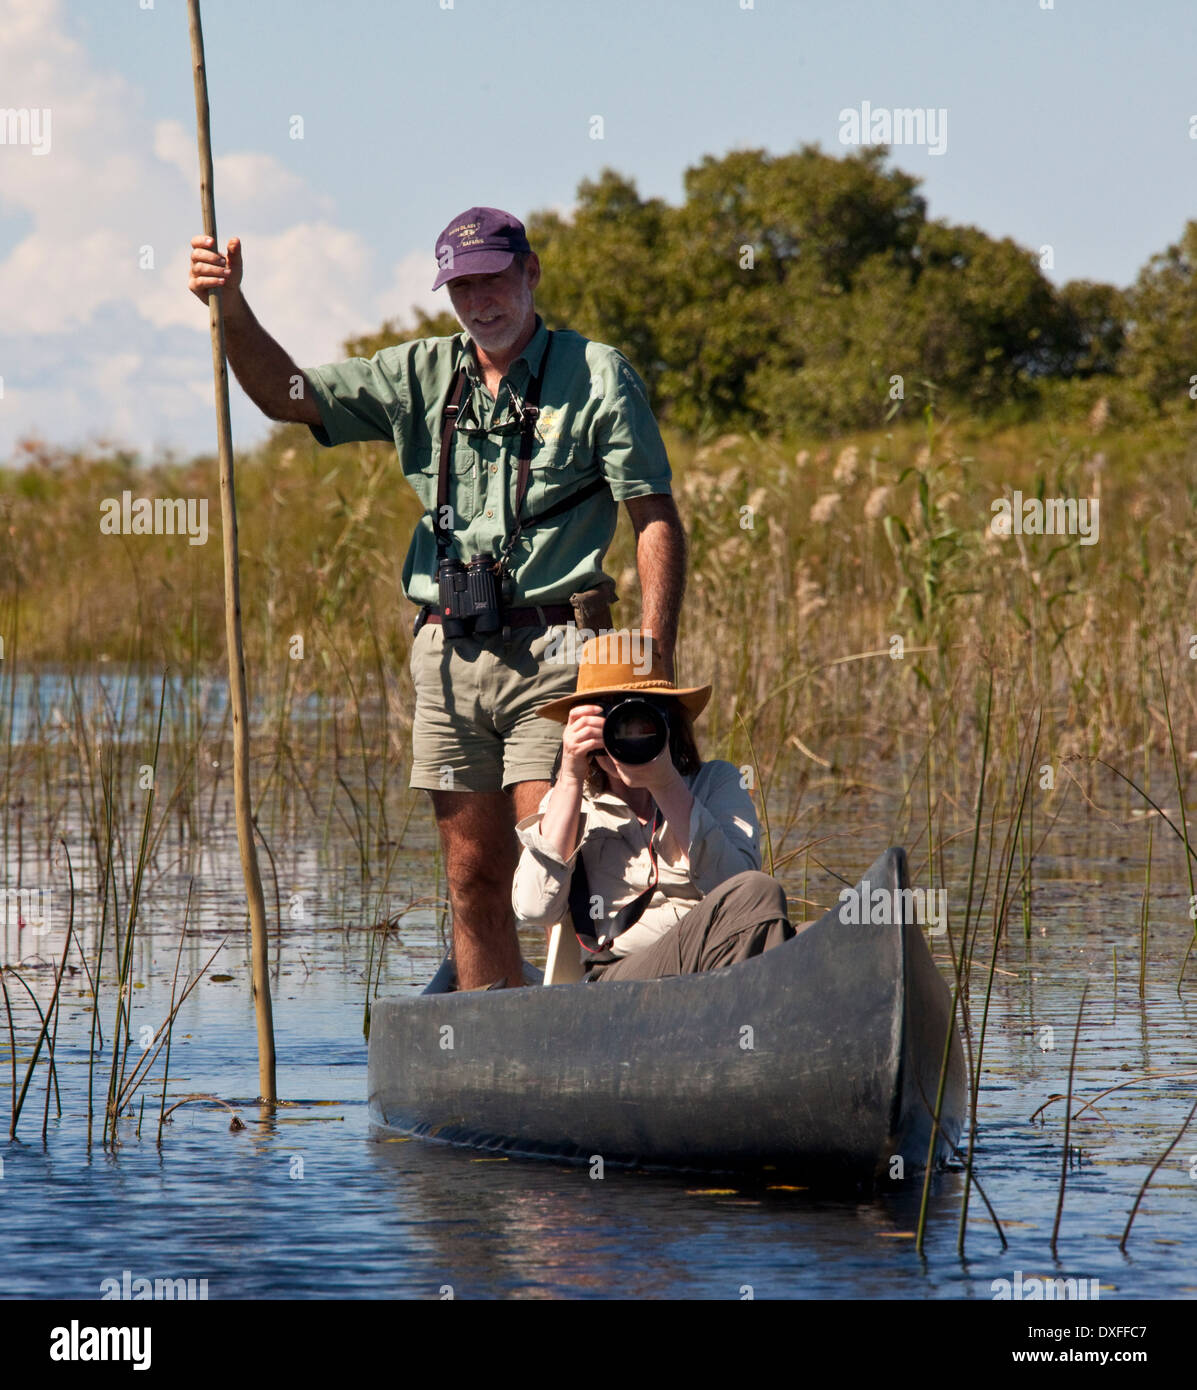 Tourist and guide in the Okavango Delta in Botswana. - Stock Image